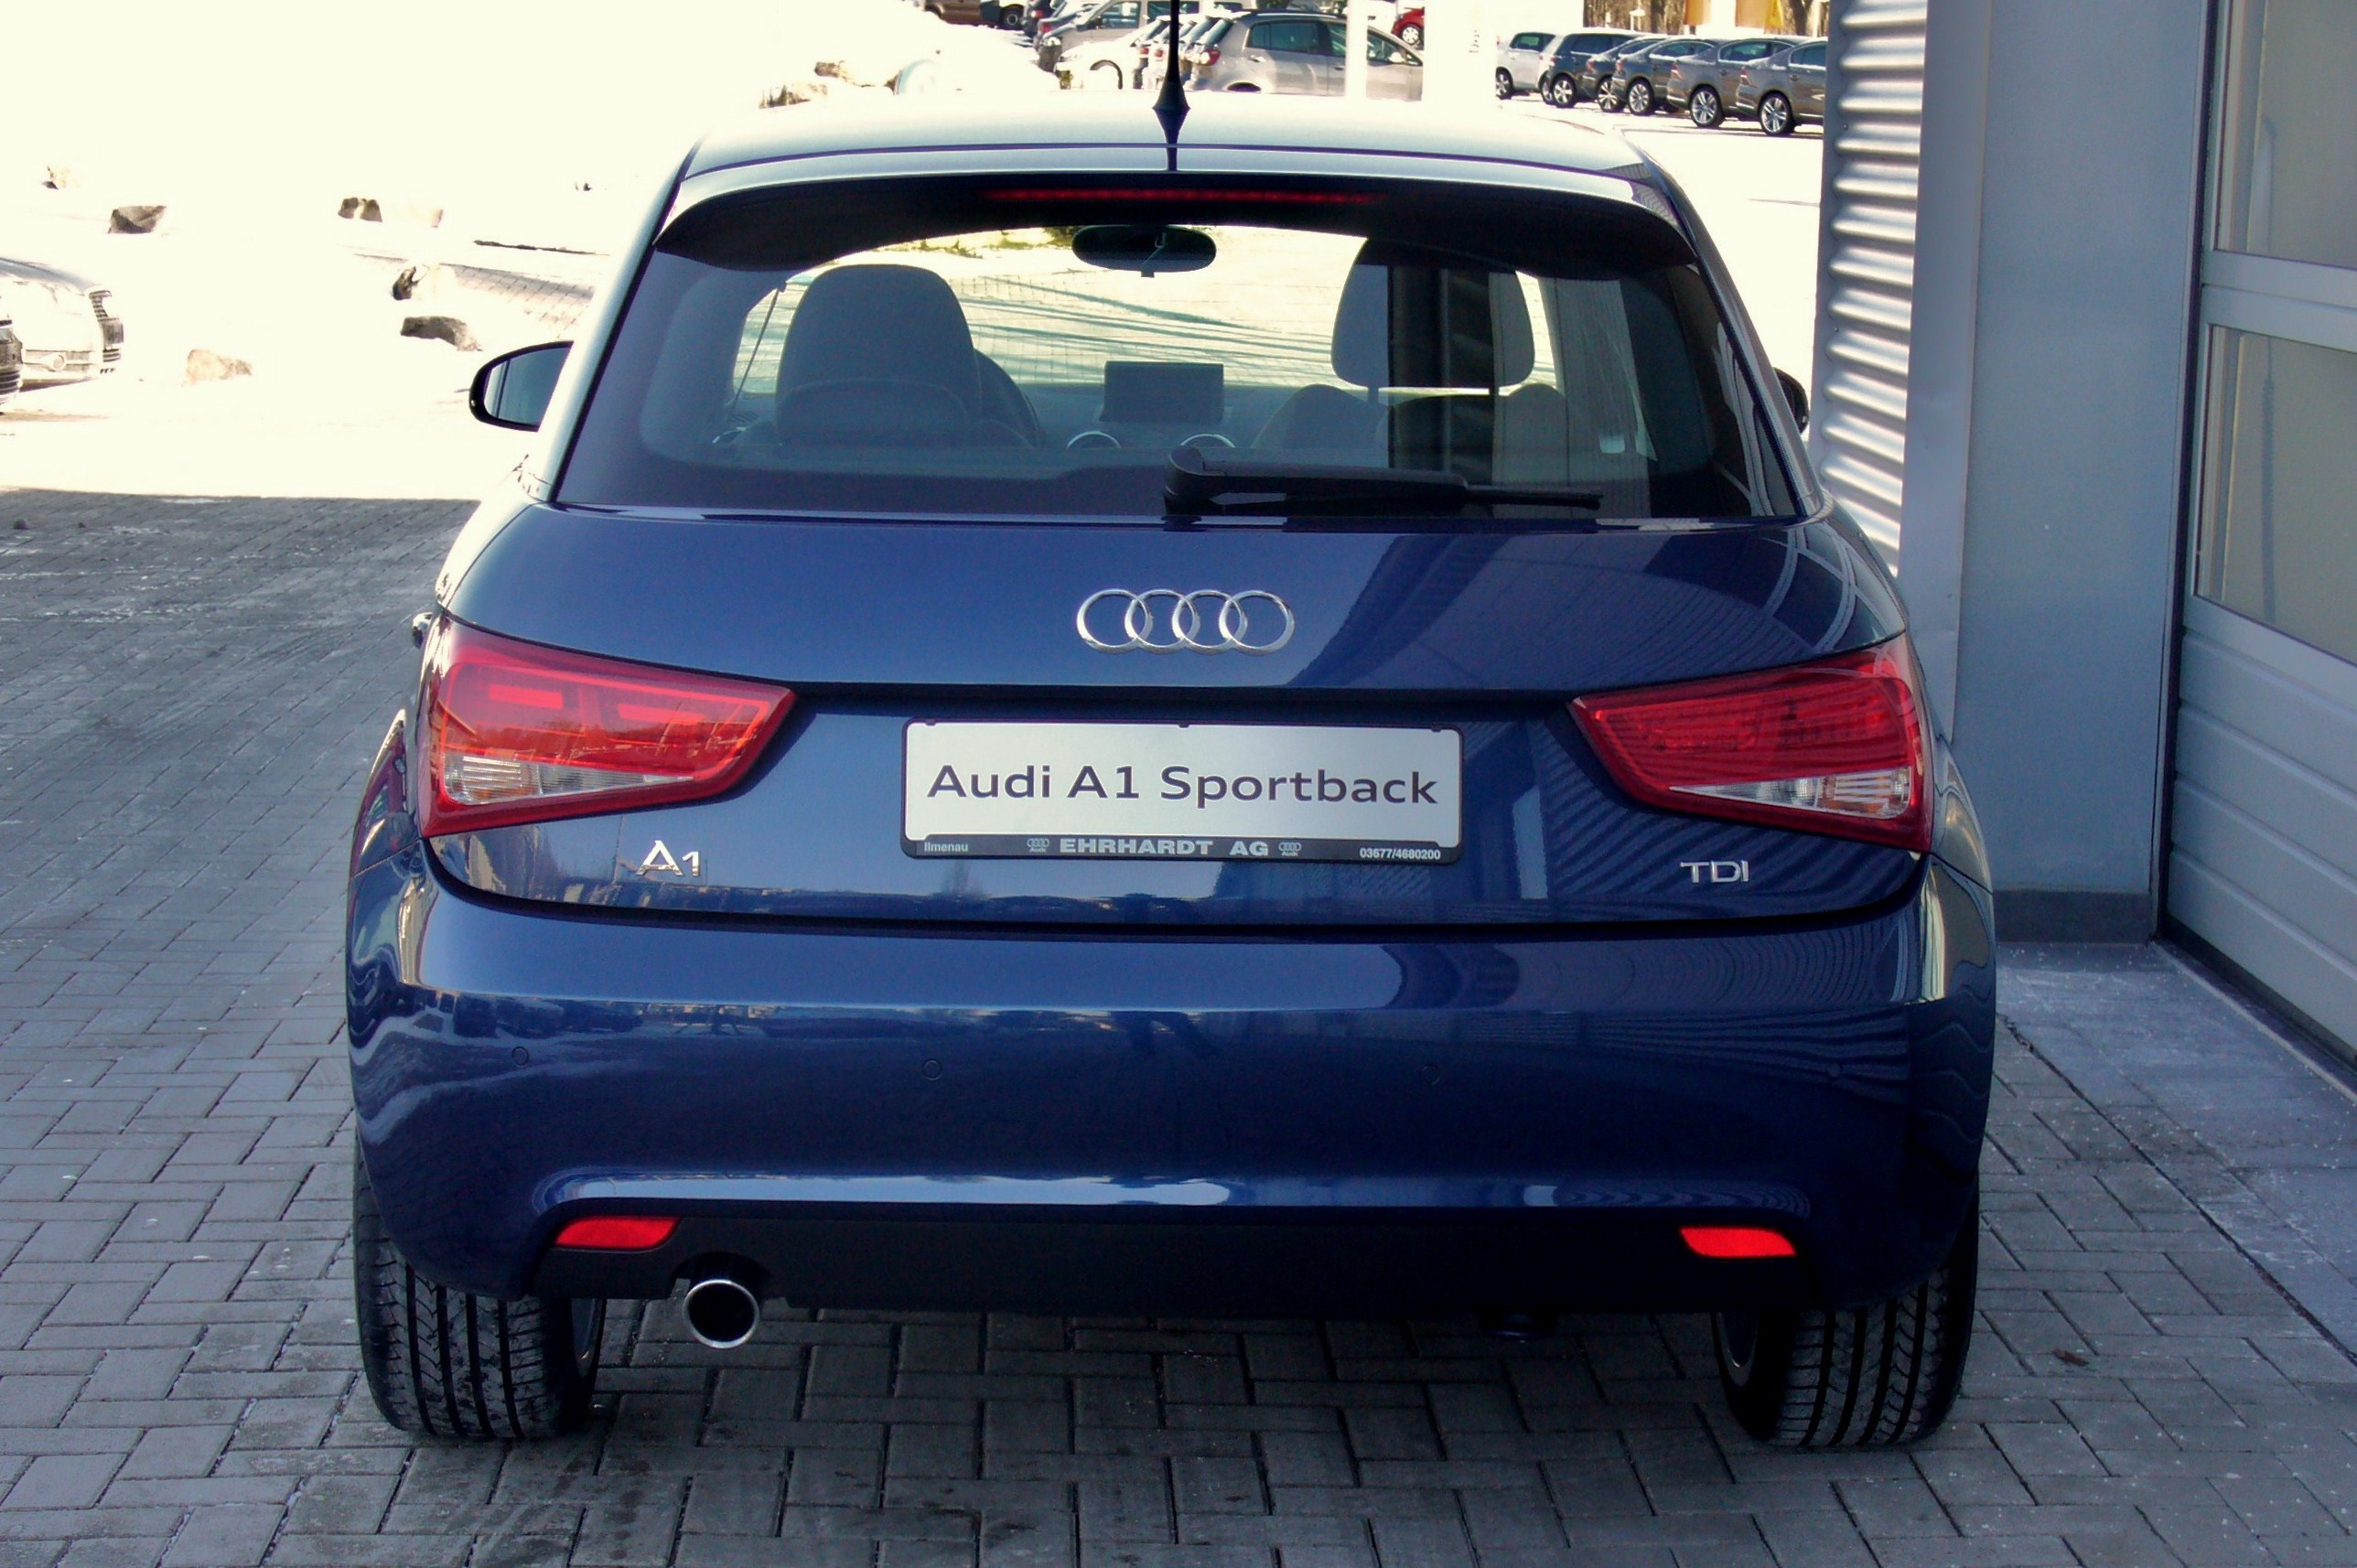 file audi a1 sportback ambition 1 6 tdi scubablau hinten. Black Bedroom Furniture Sets. Home Design Ideas